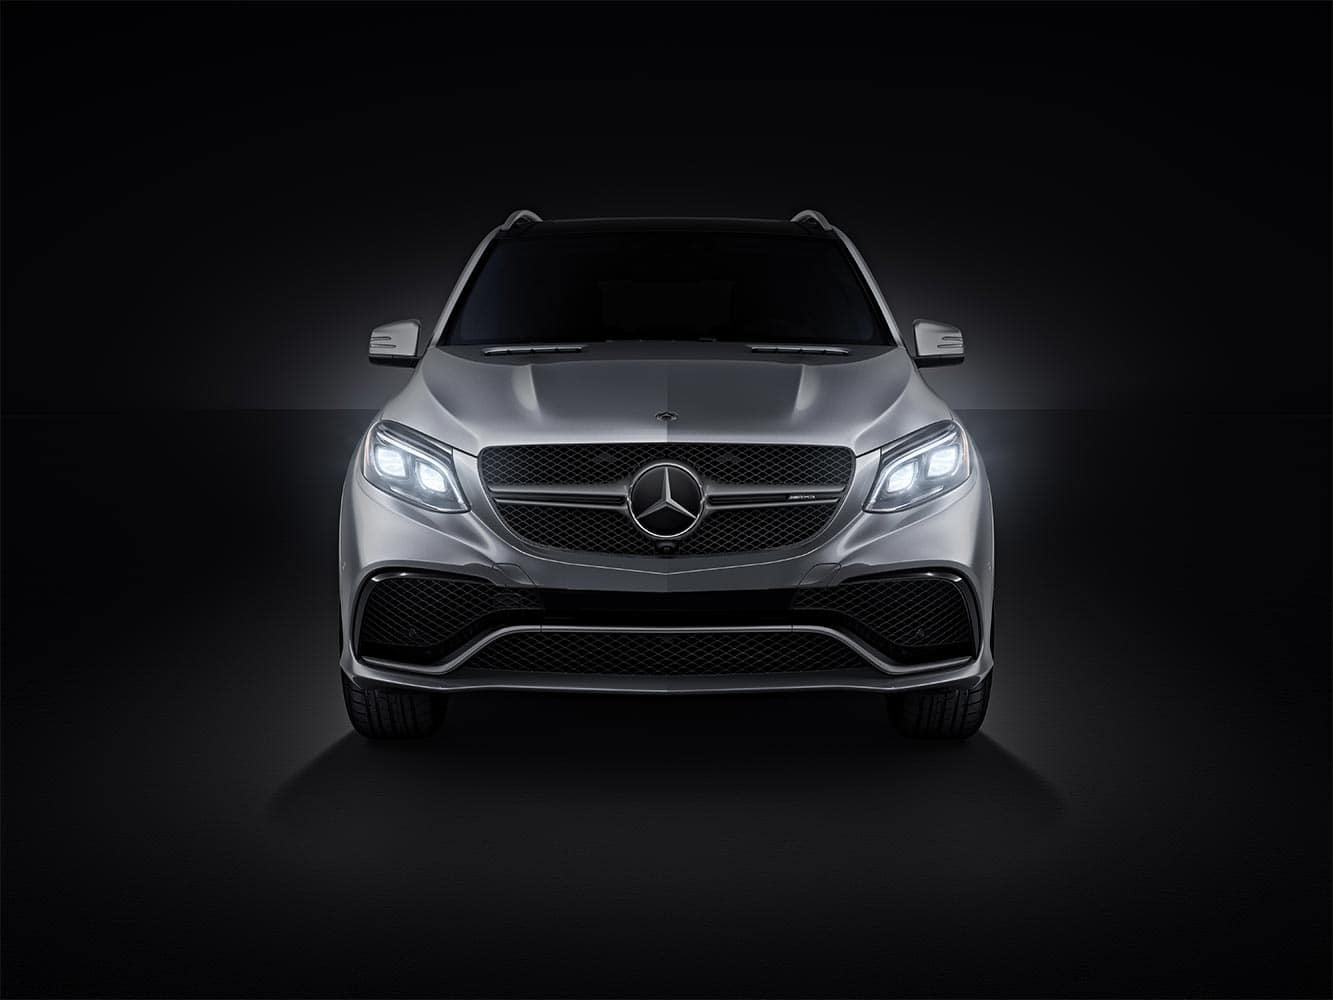 Mercedes of buckhead used cars cars image 2018 for Dealer mercedes benz